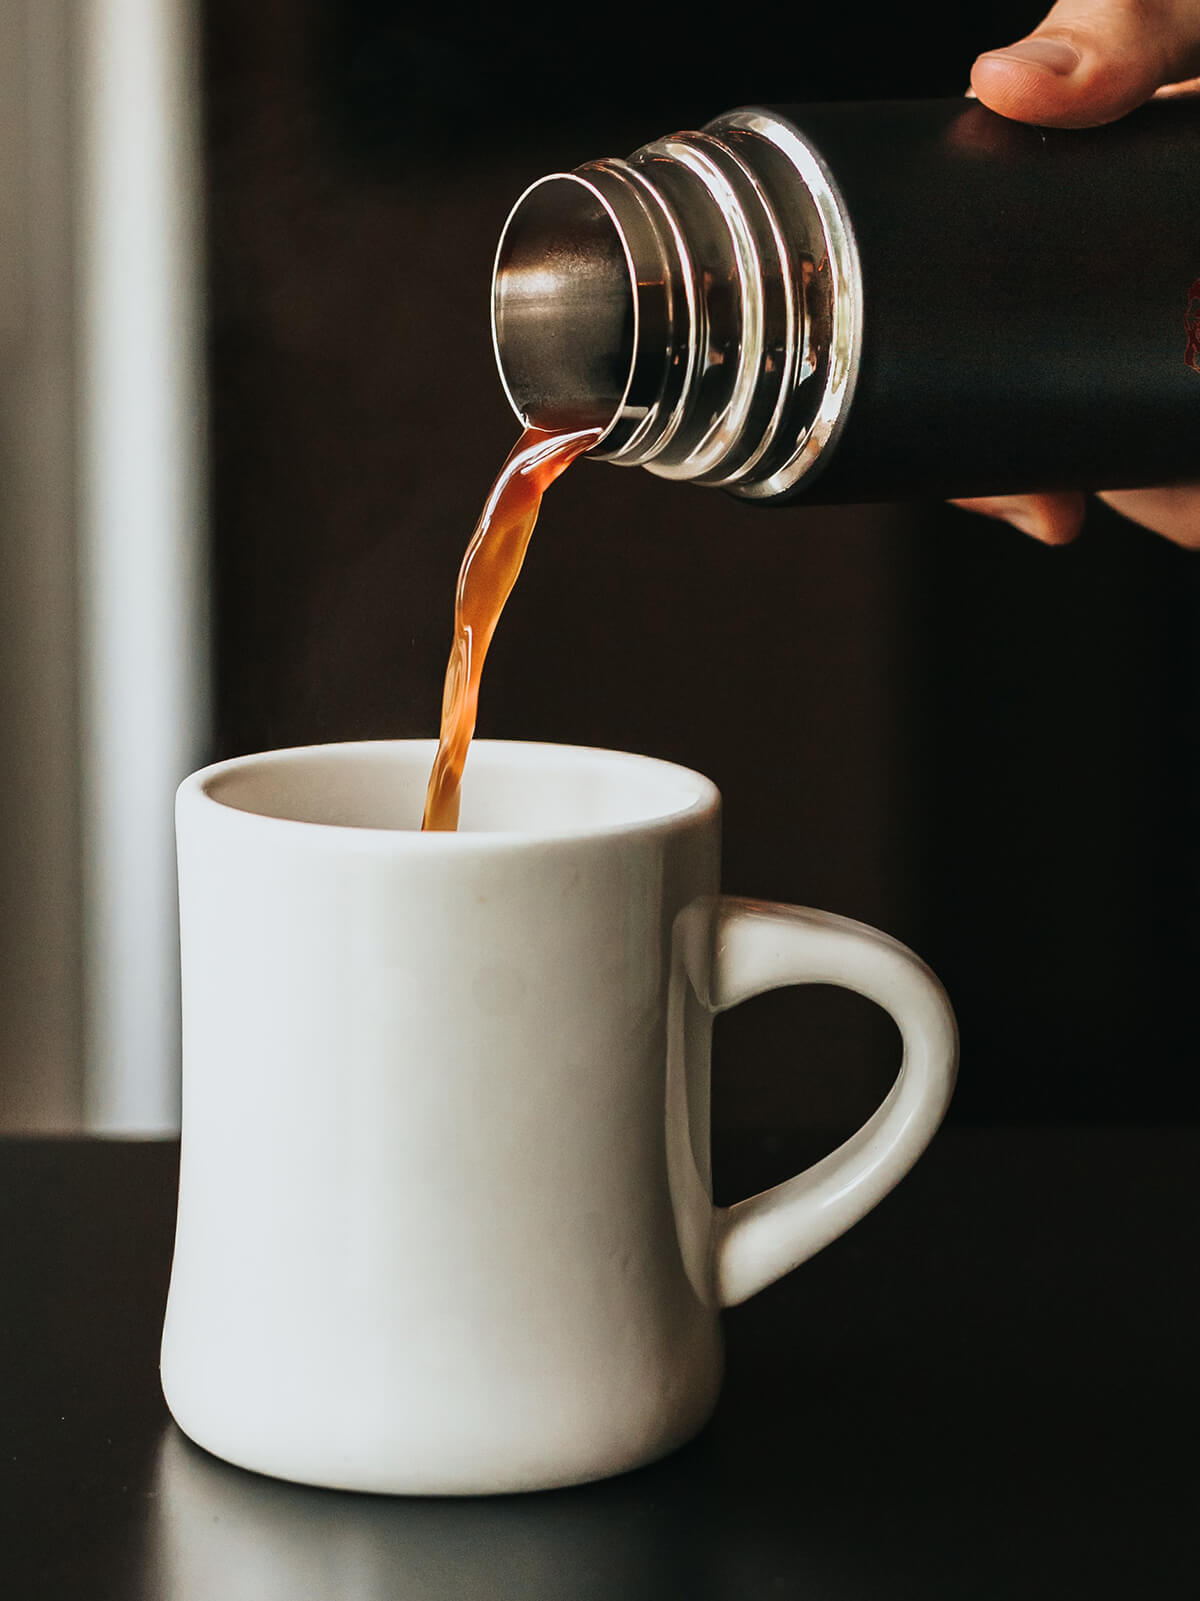 Black coffee being poured out of a thermos